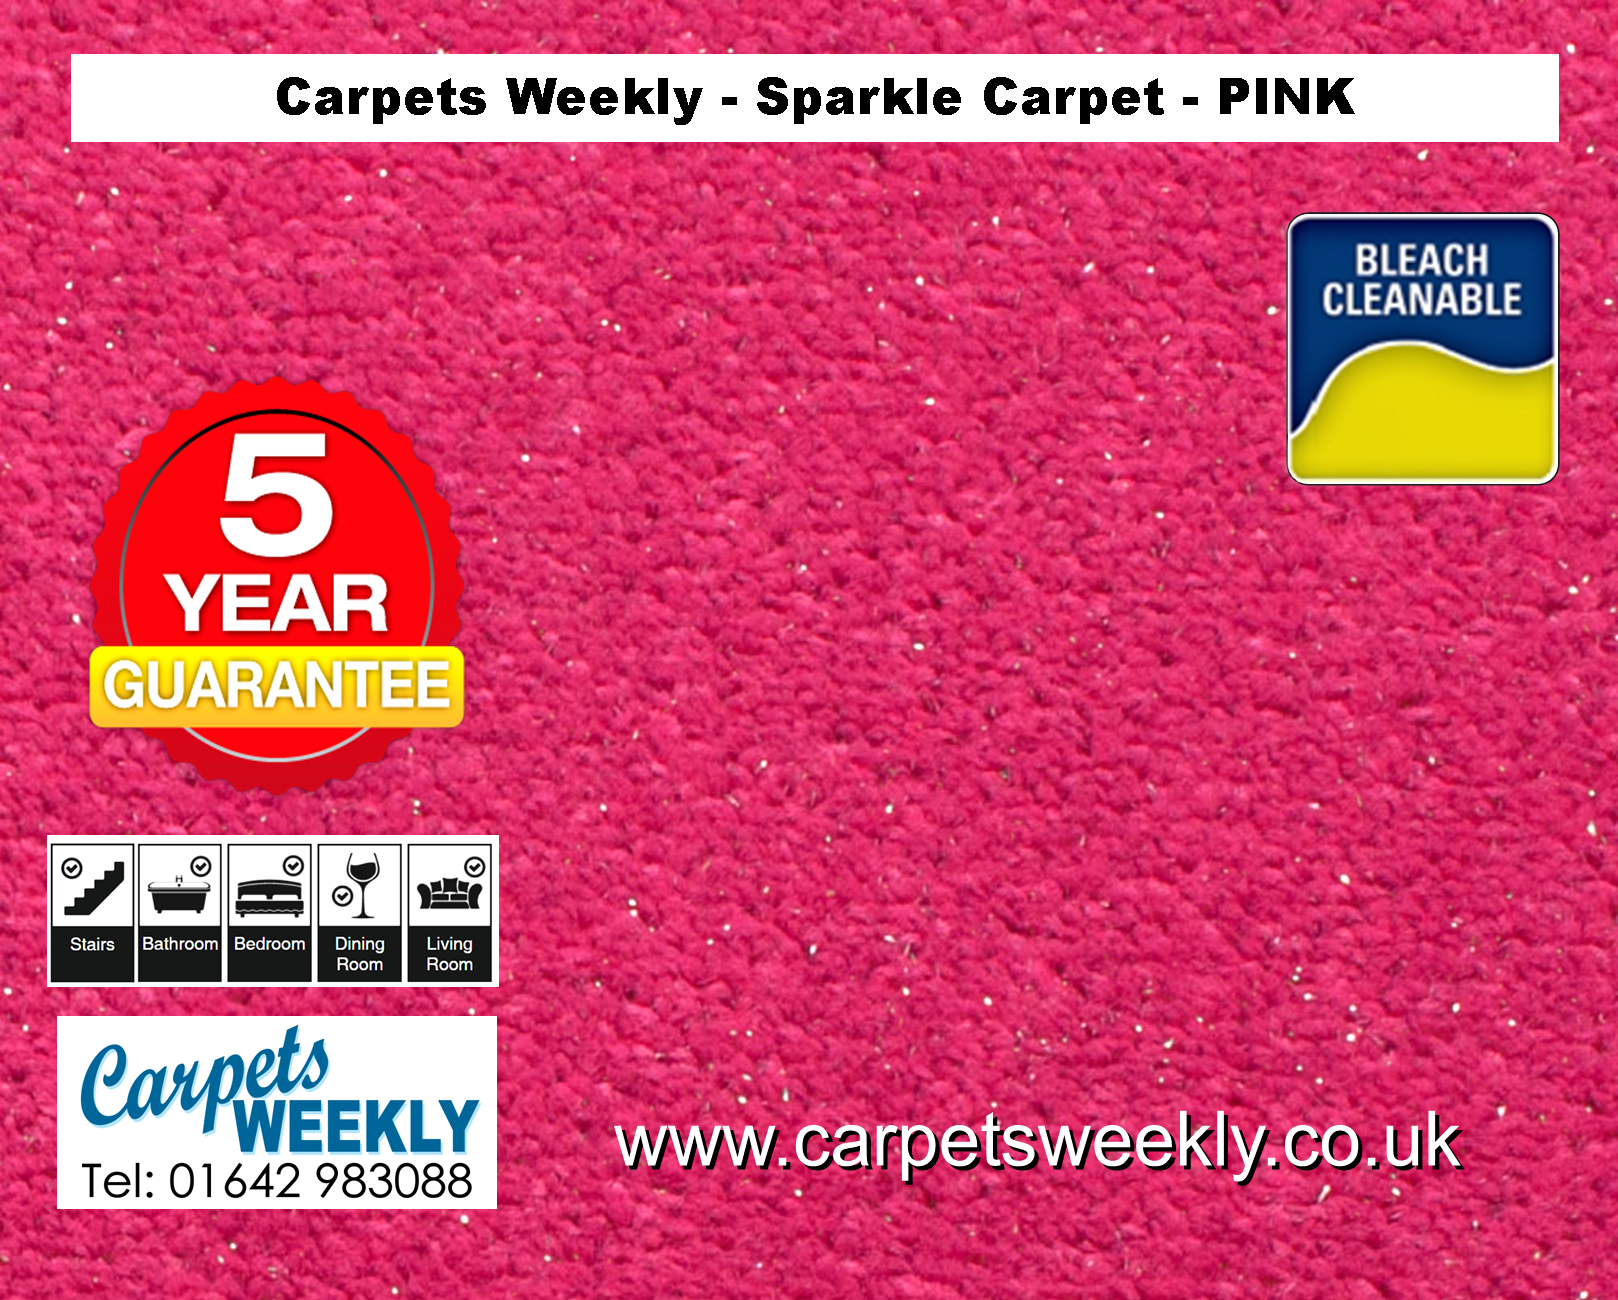 Pink Sparkle Carpet from Carpets Weekly